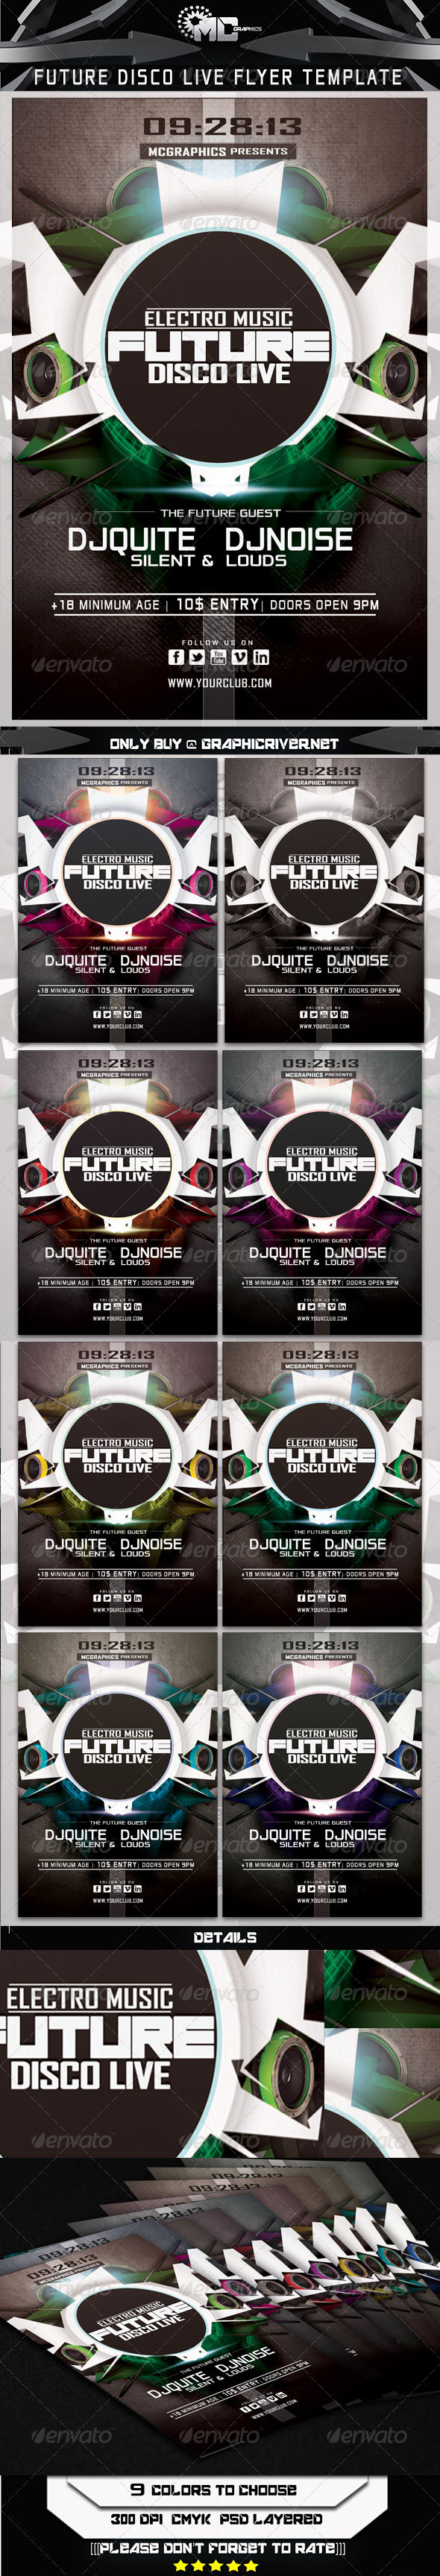 GraphicRiver Future Disco Live Flyer Tempate 5565162